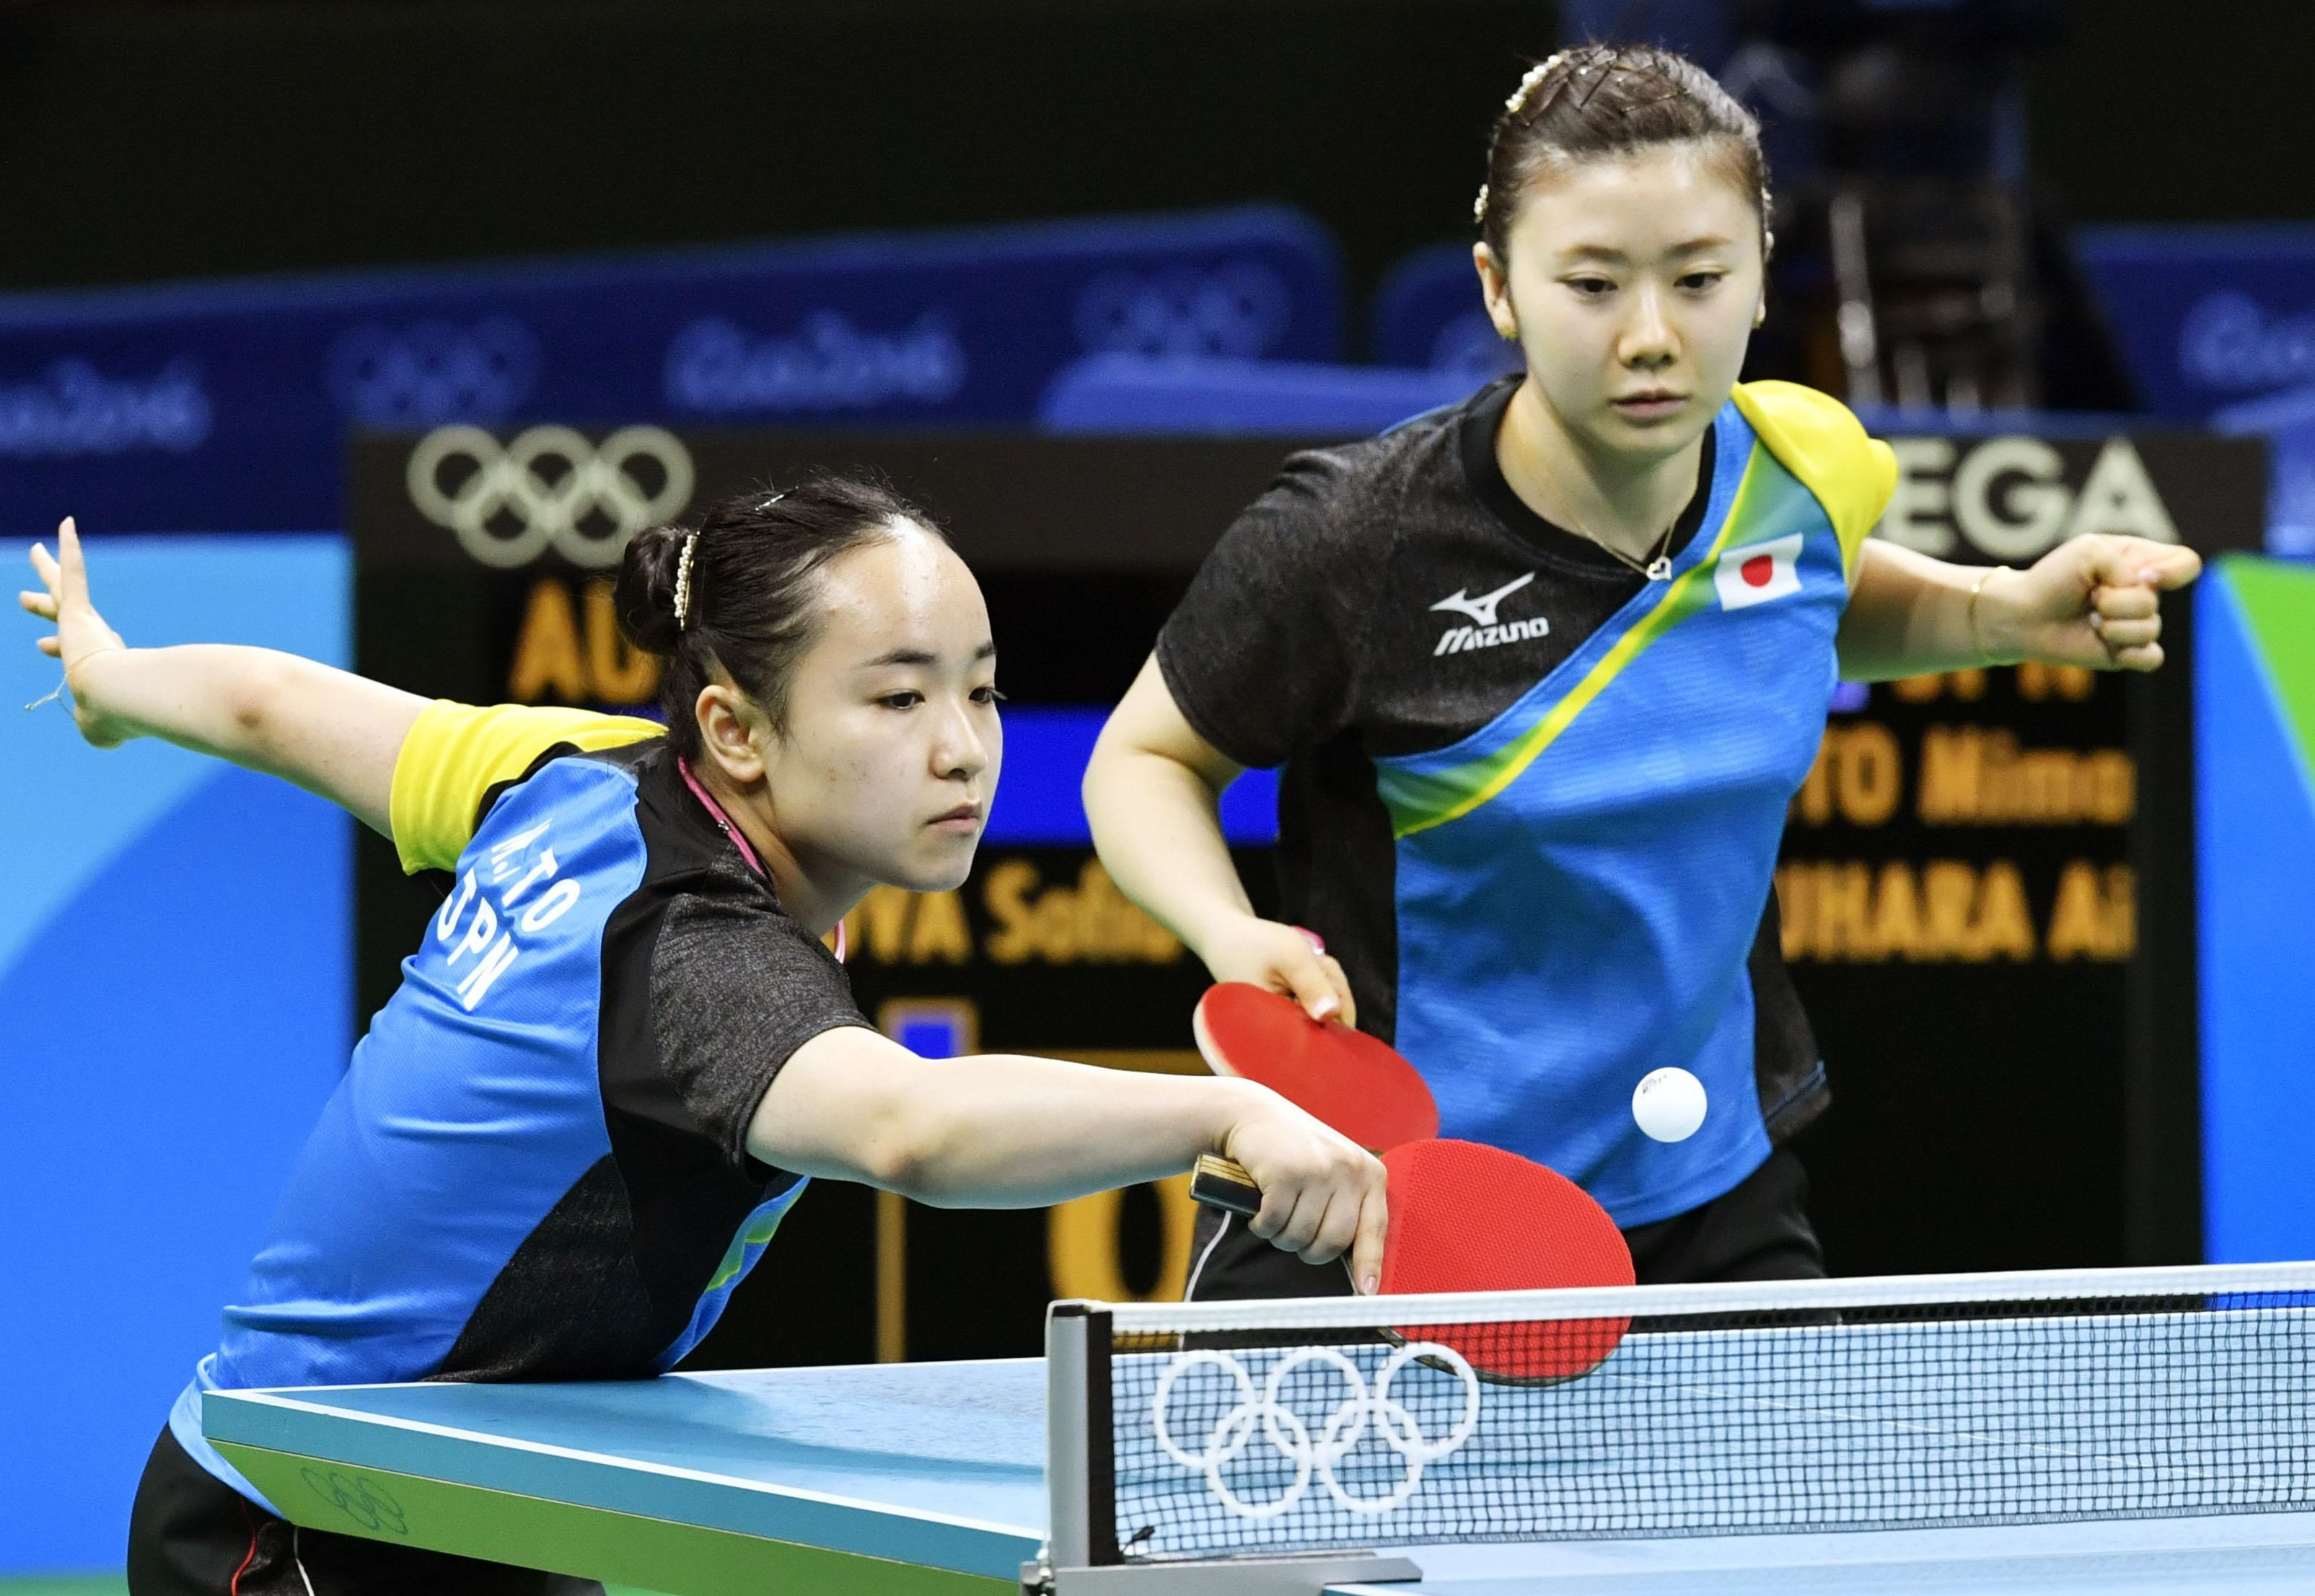 Mima Ito (left), playing with doubles partner Ai Fukuhara, hits a shot during Japan's women's table tennis team quarterfinal match against Austria at the 2016 Rio Olympics on Saturday. | KYODO